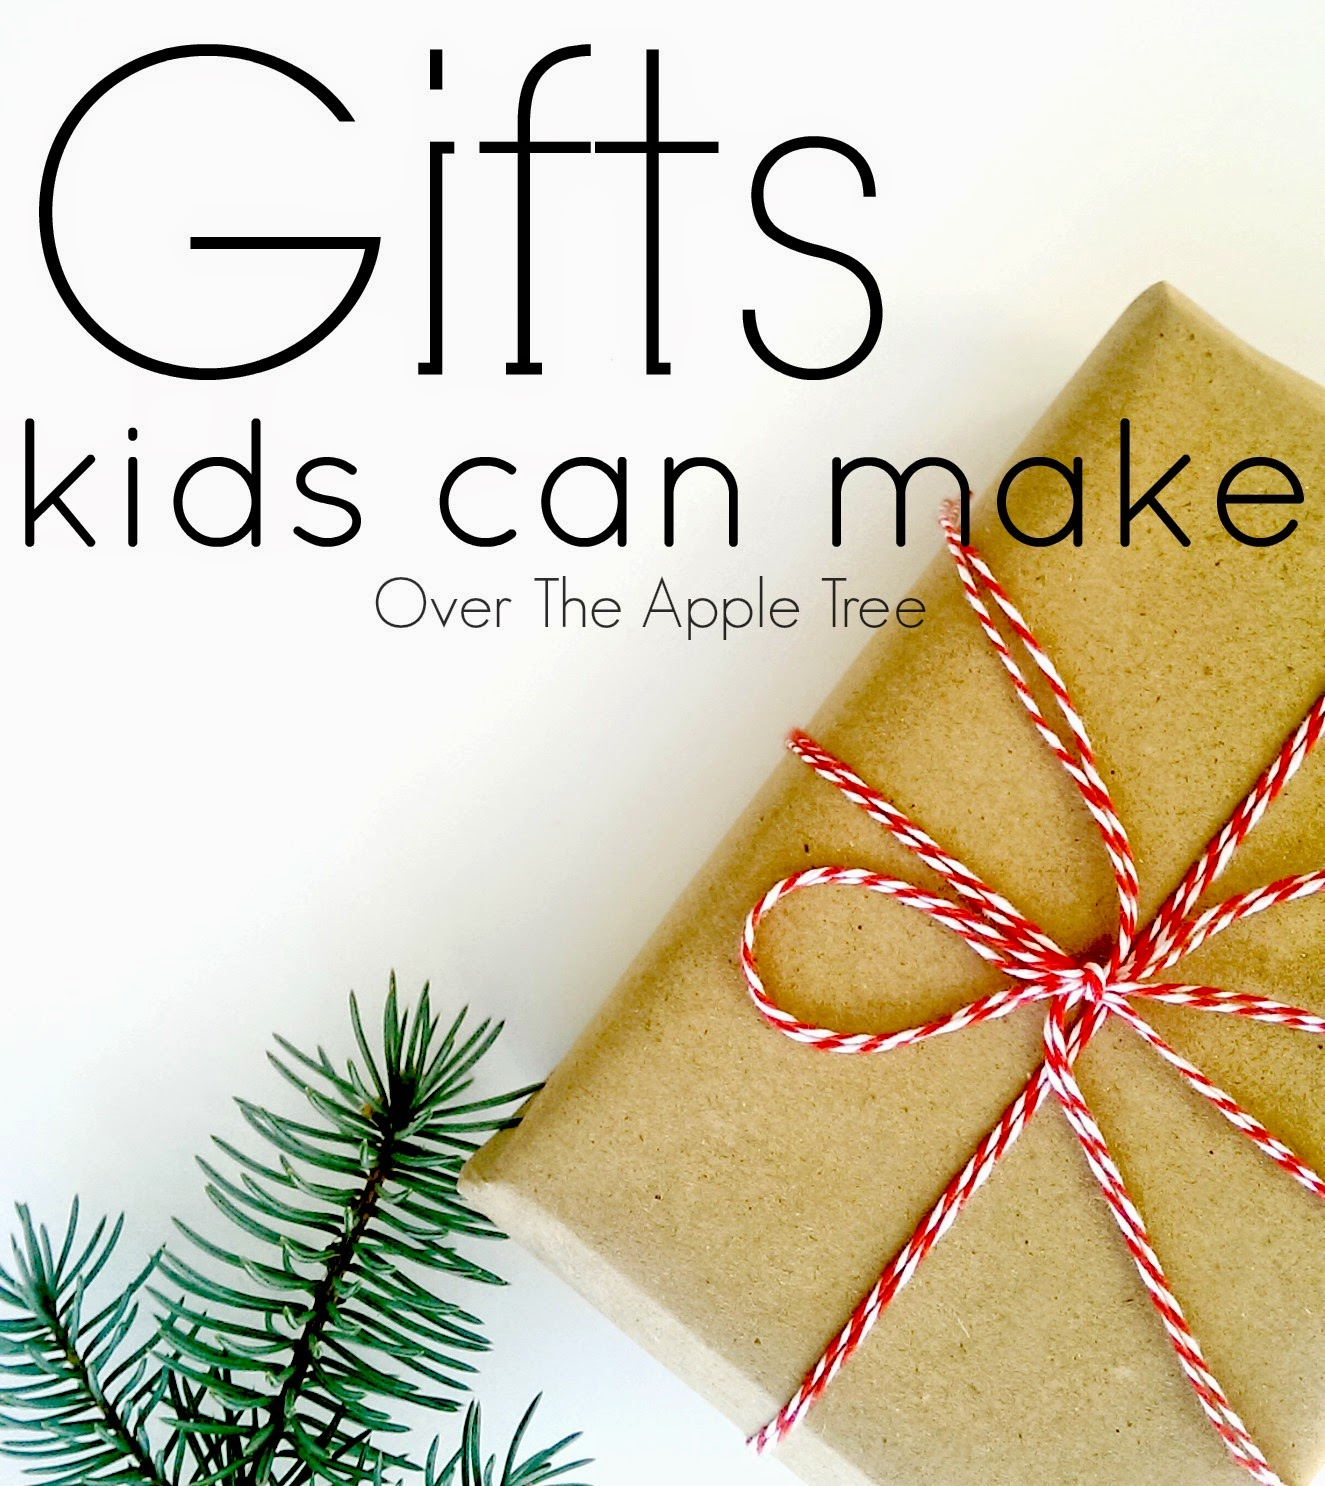 Gifts kids can make- Over The Apple Tree